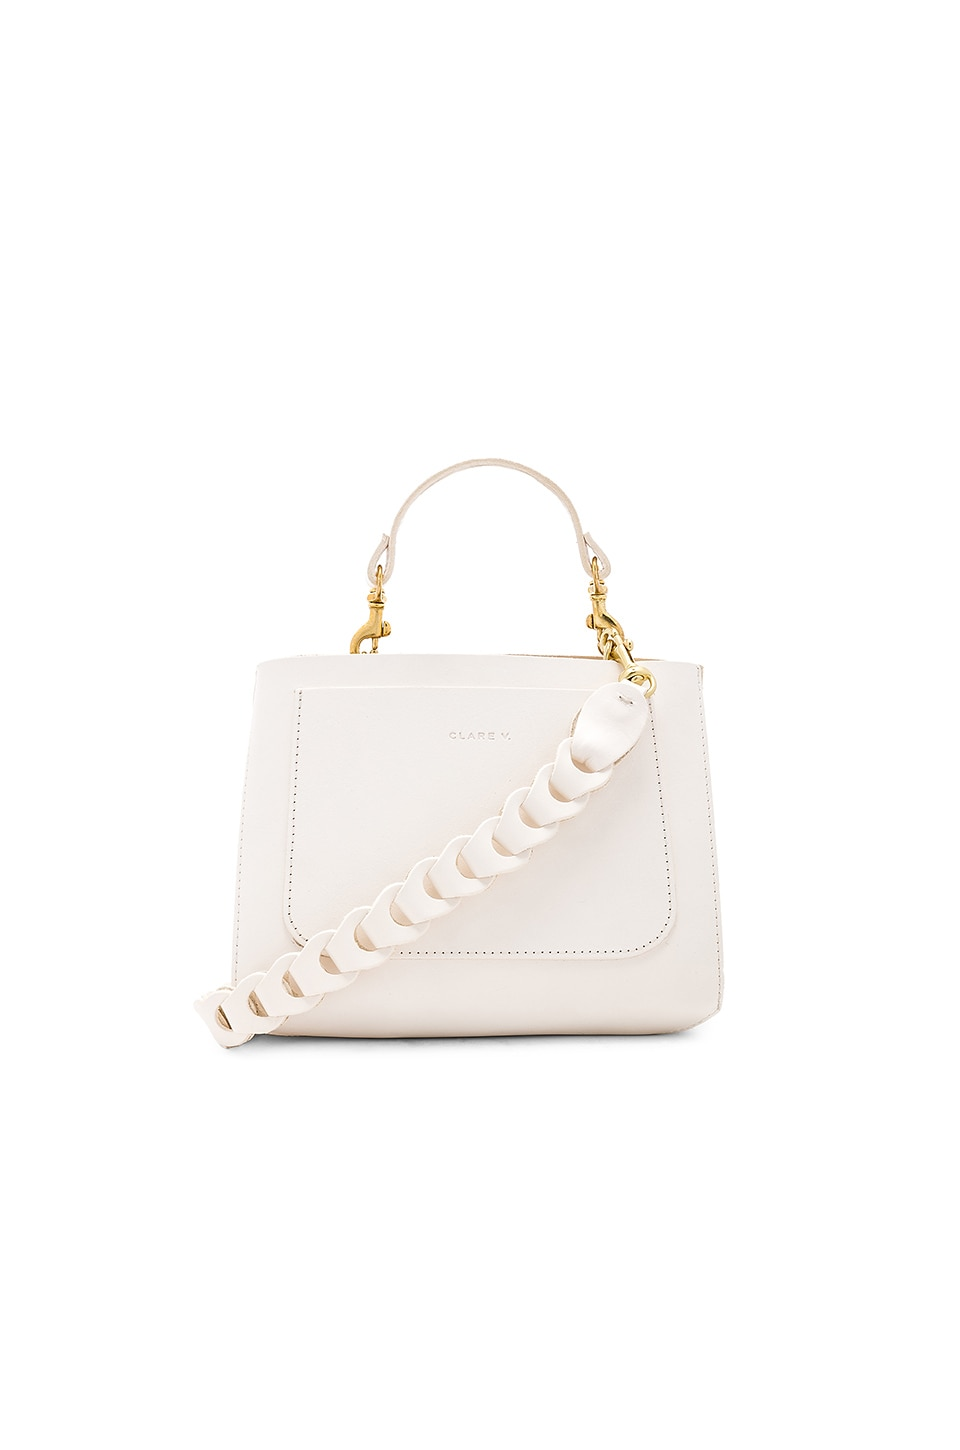 Clare V. Brique Bag in White